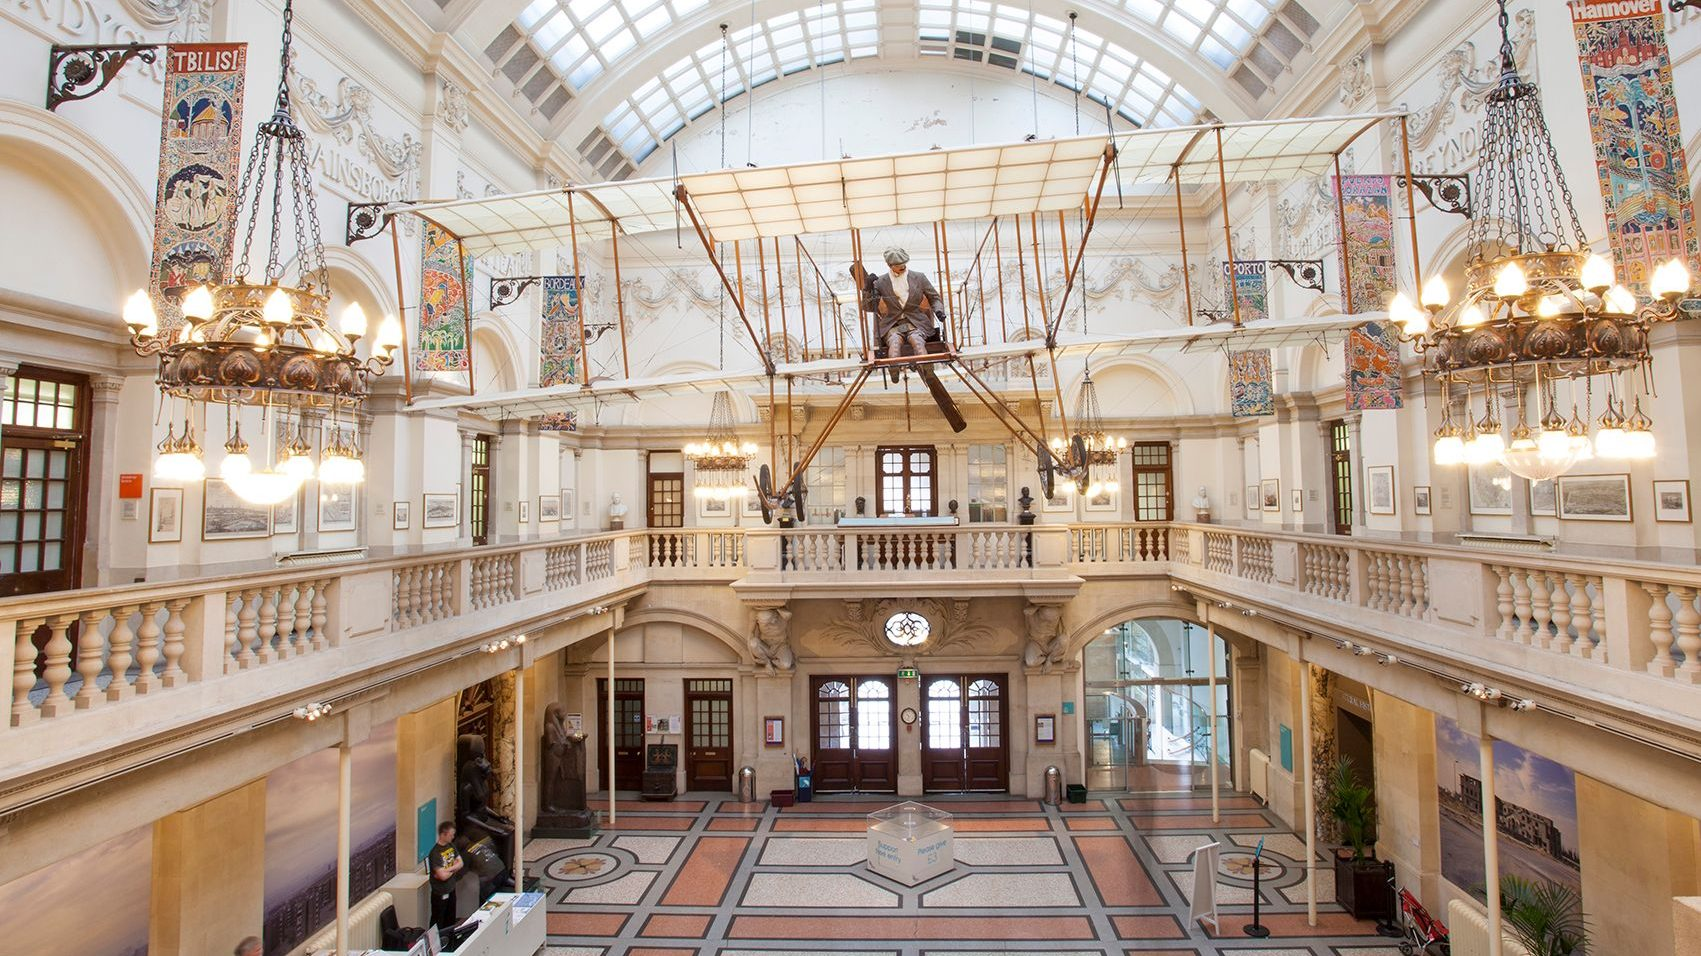 Bristol Museum and Art Gallery was left with a hefty repair bill after a sewage flood in 2019